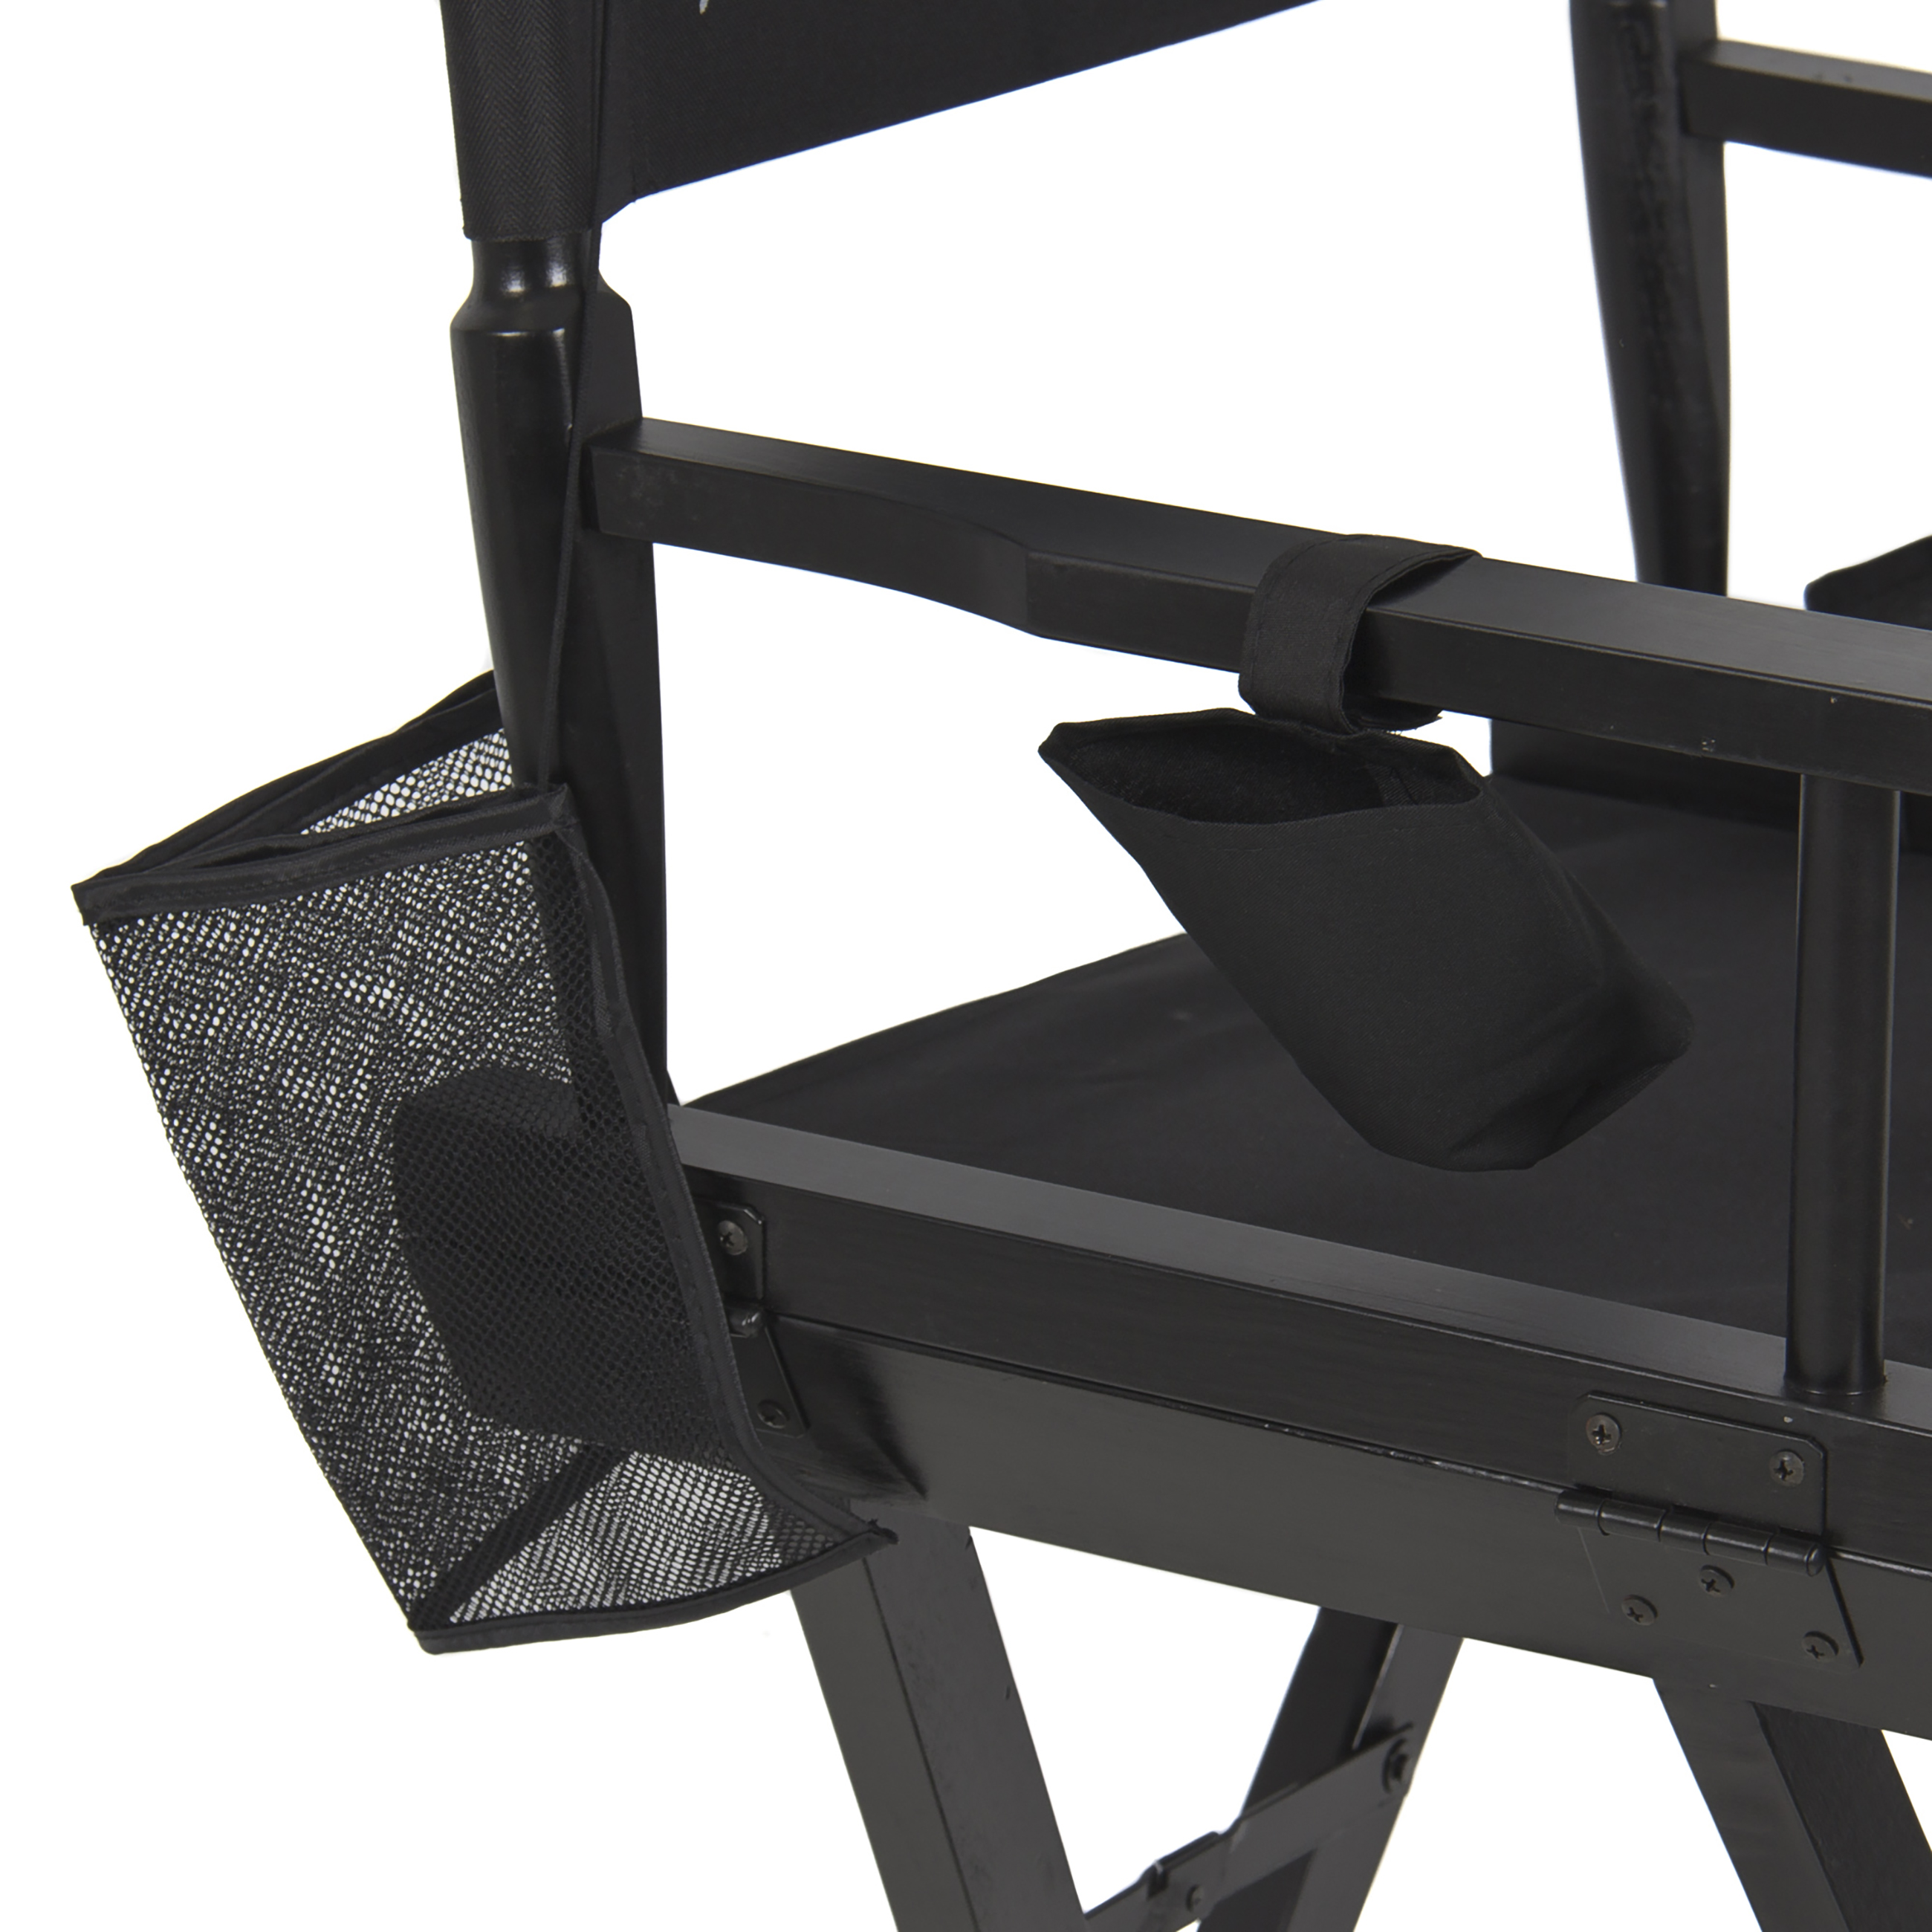 Best Choice Products Foldable Lightweight Professional Makeup Artist Directors Chair - Black - Walmart.com  sc 1 st  Walmart & Best Choice Products Foldable Lightweight Professional Makeup Artist ...